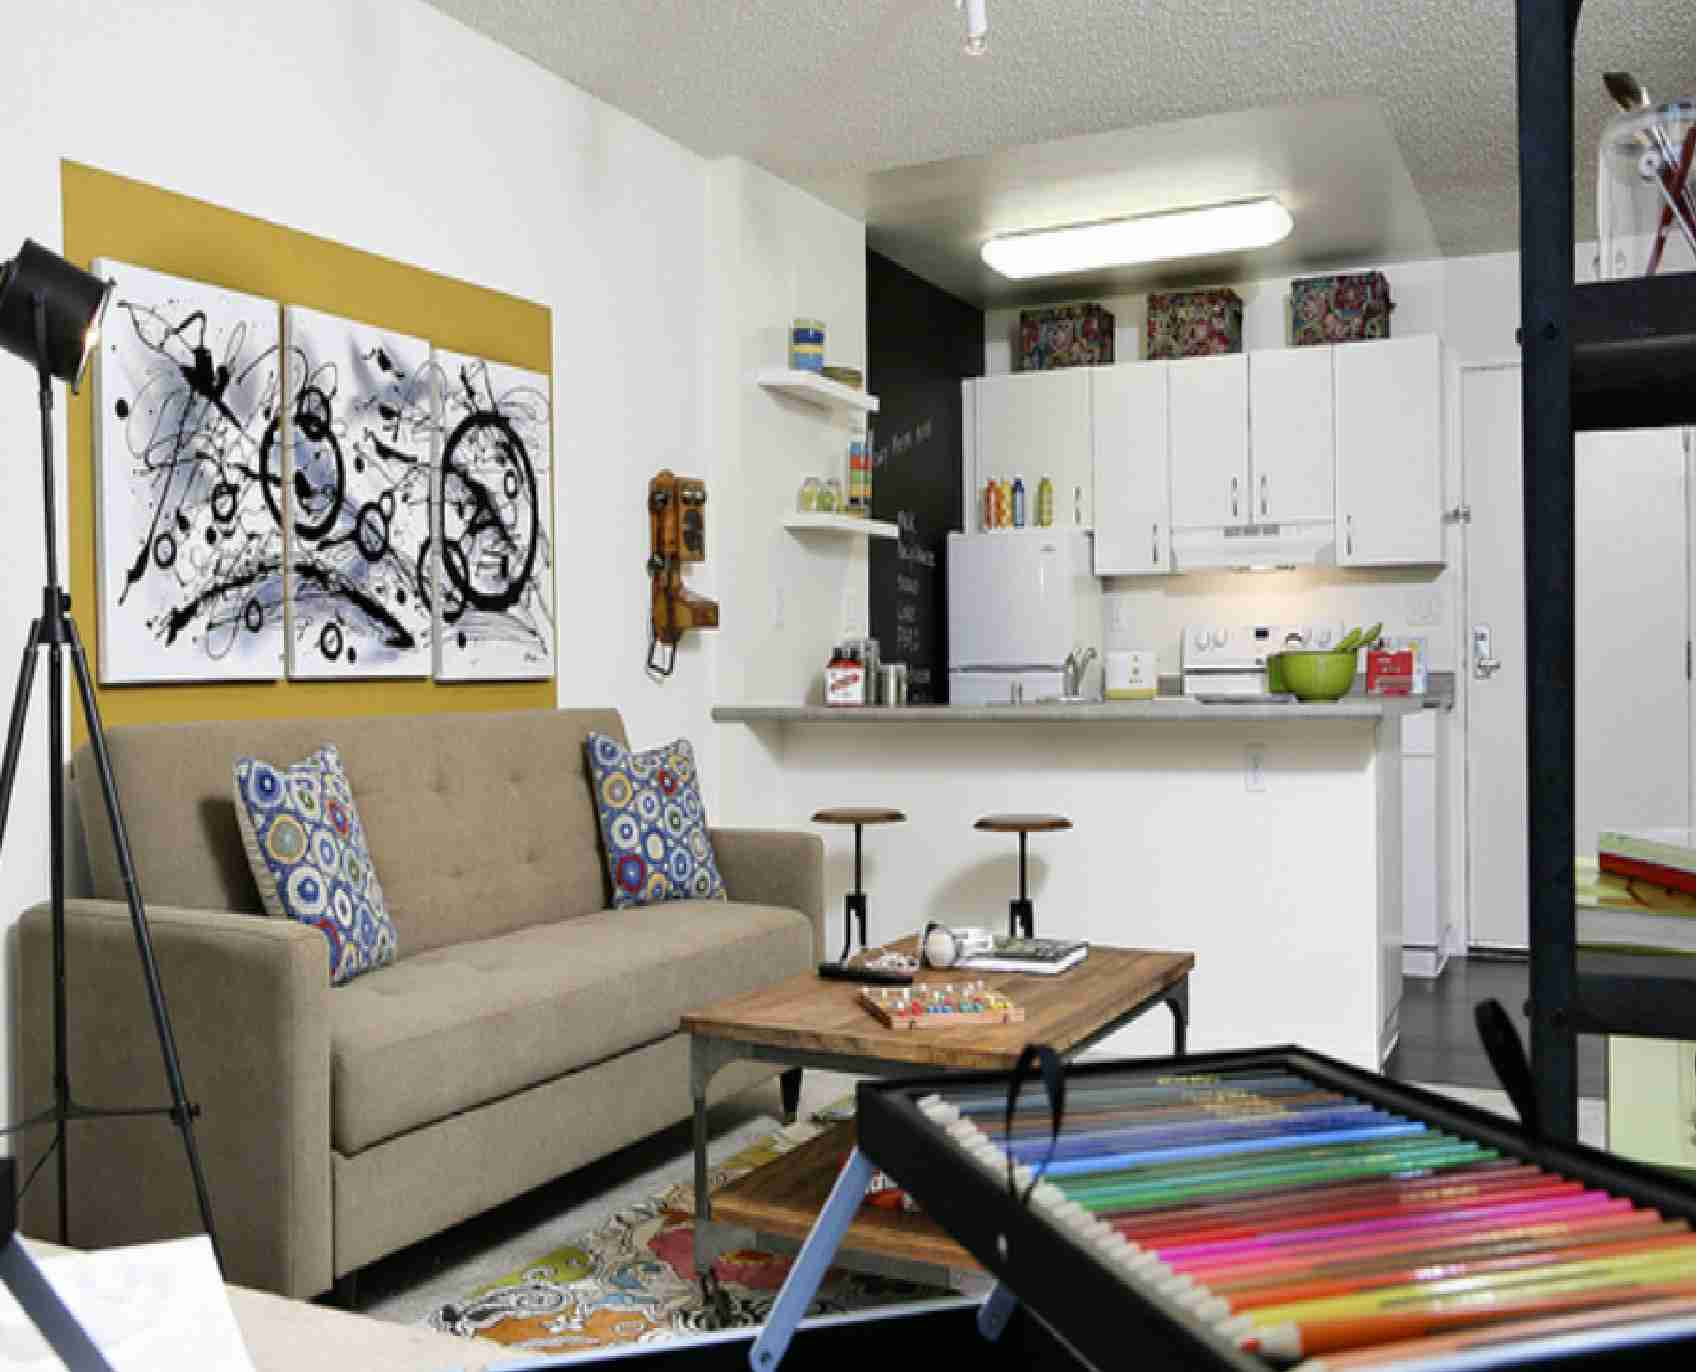 Basic Decorating Ideas for Small Spaces - Bee Home Plan ...